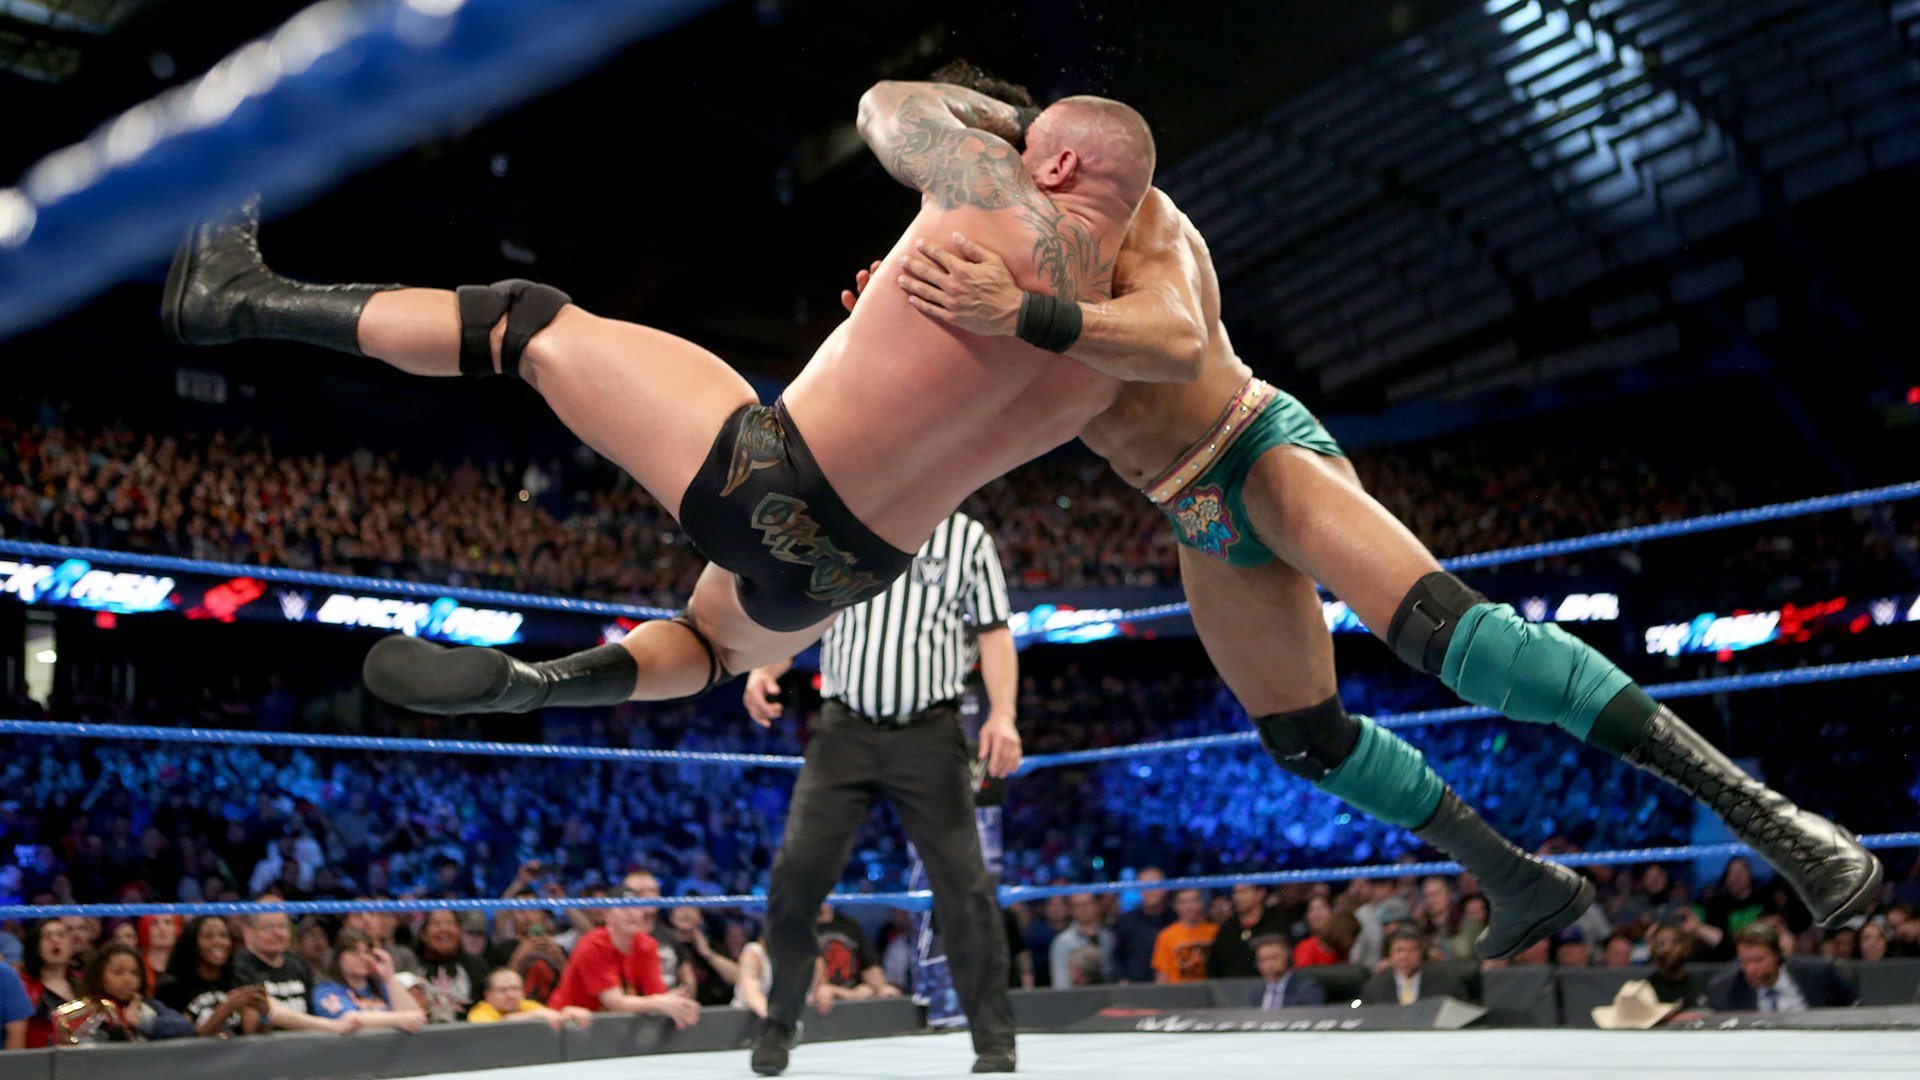 Orton his an RKO outta knowhere!